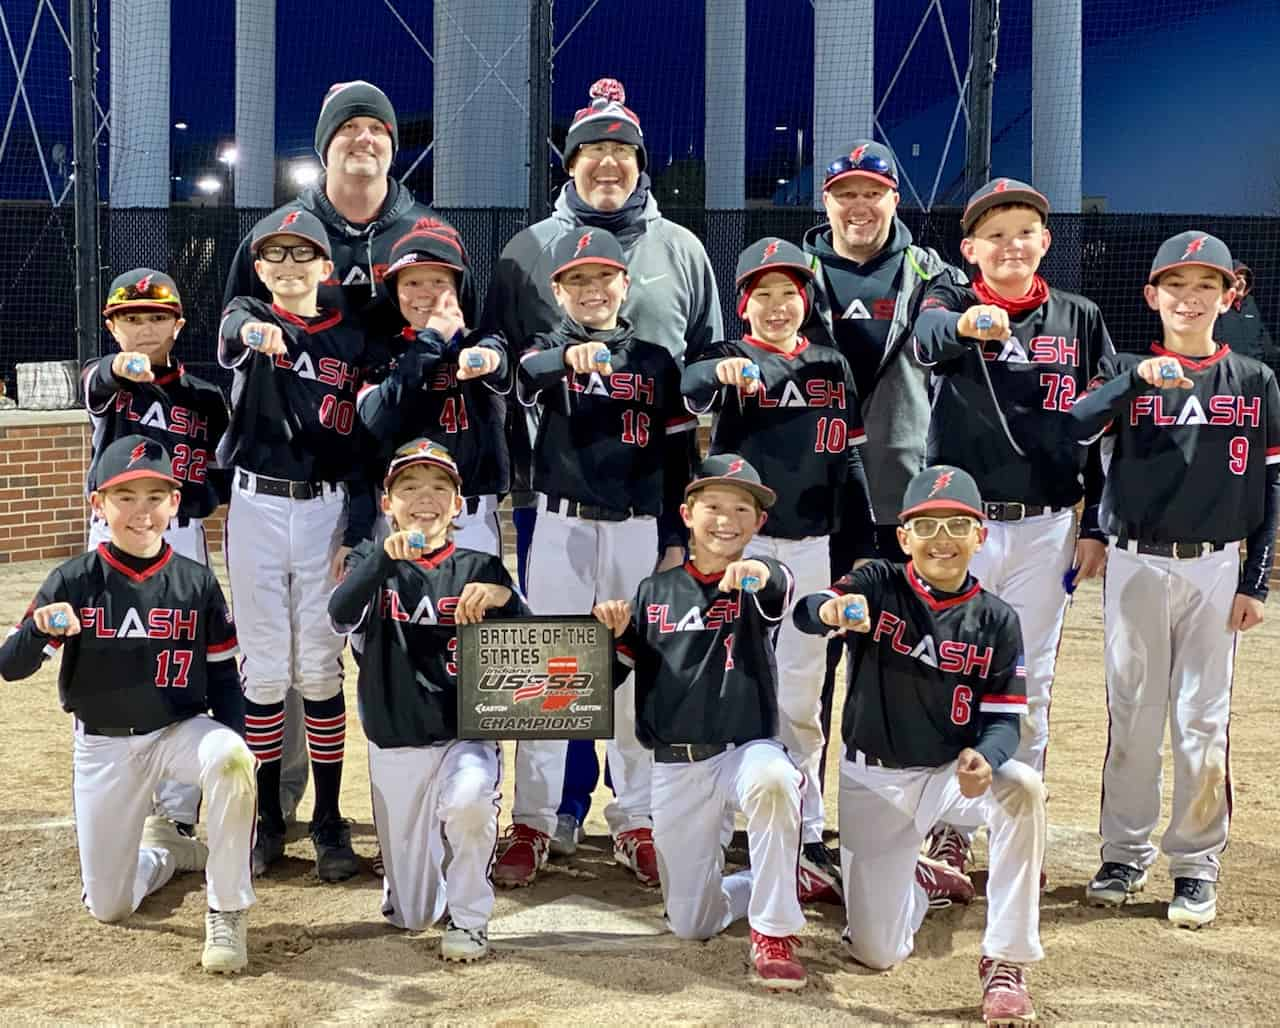 11 U boys Flash baseball team with coaches kneeling wearing rings and holding a championship plate for Battle of the States USSSA